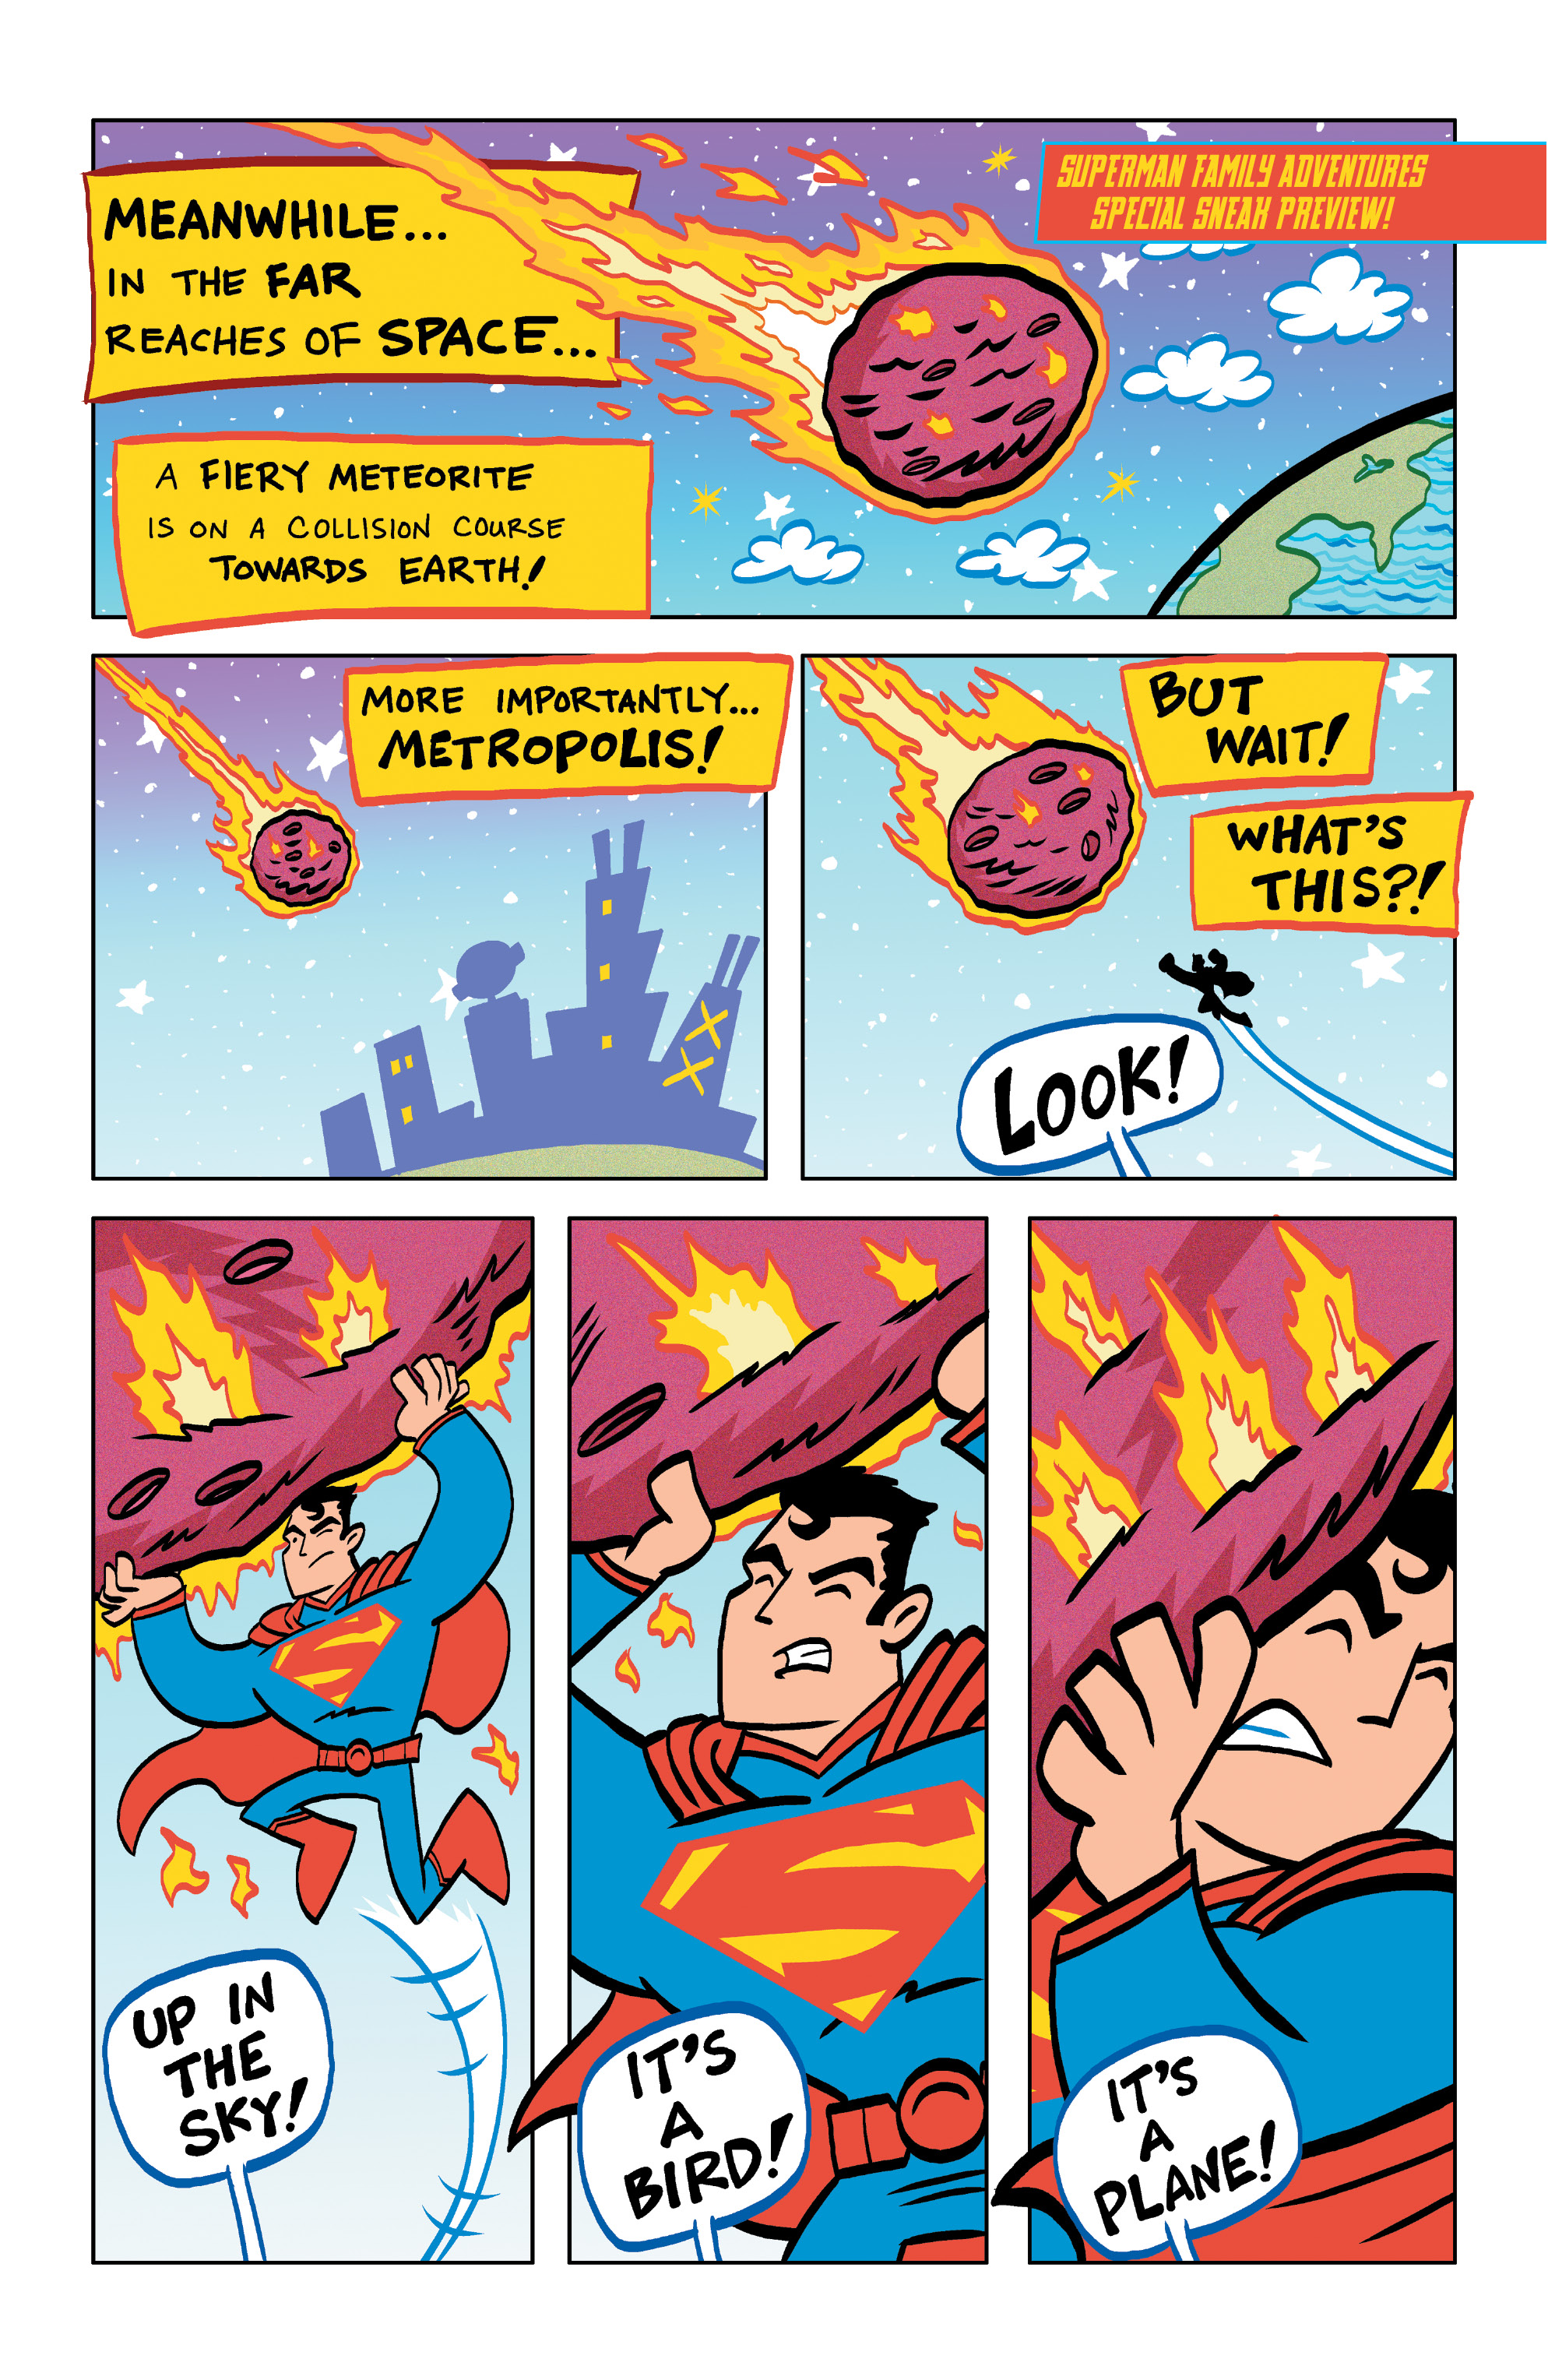 Superman Family Adventures 5 page preview arrives